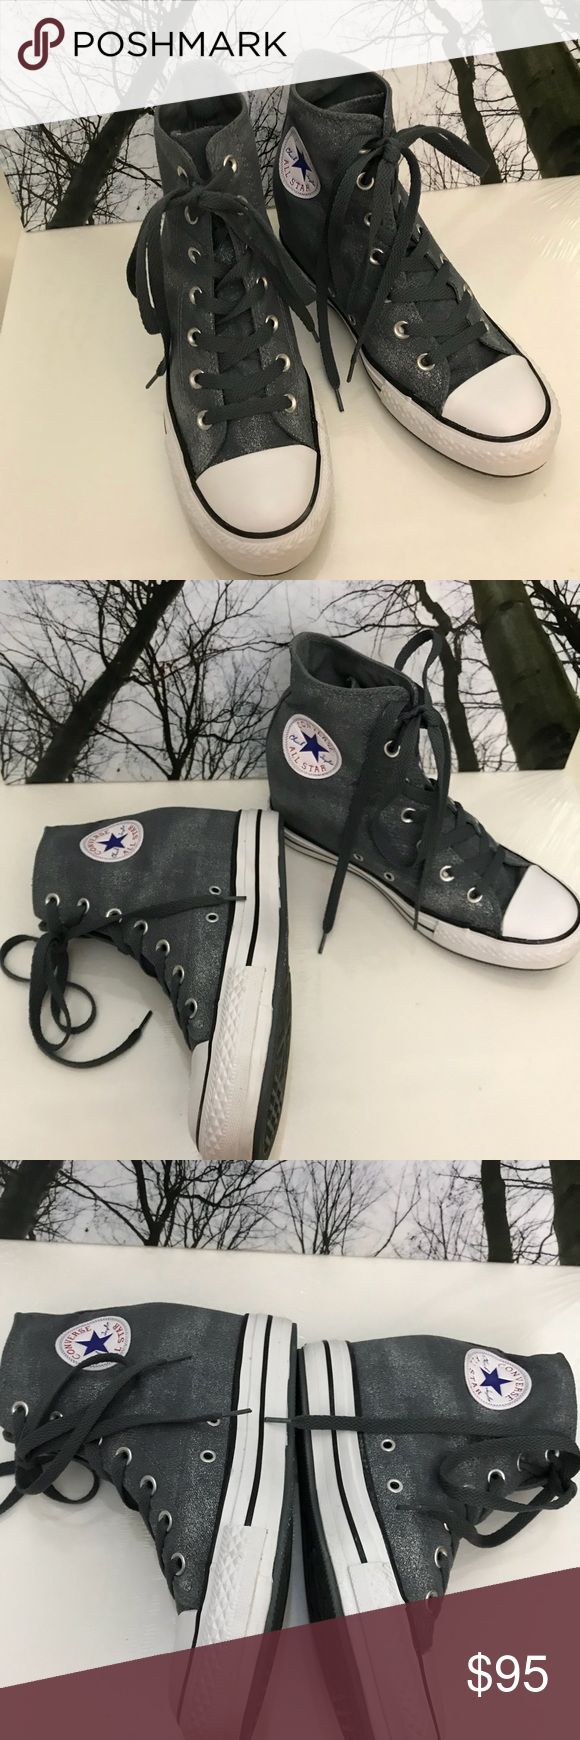 ❇️ACT Lux canvas Wedge ‼️On Sale Till 11/26/ NWOT- Authentic Converse Chuck Taylor All Star Lux Mid Women's Shoes. 💯% Authentic. Color.Gray like These are Rare & Hard to Find Brand New Shoes. The Chuck Taylor All Star Lux Women's Washed Canvas has a hidden internal wedge  to go along with a pigment sprayed and stonewashed upper. Converse Shoes Wedges